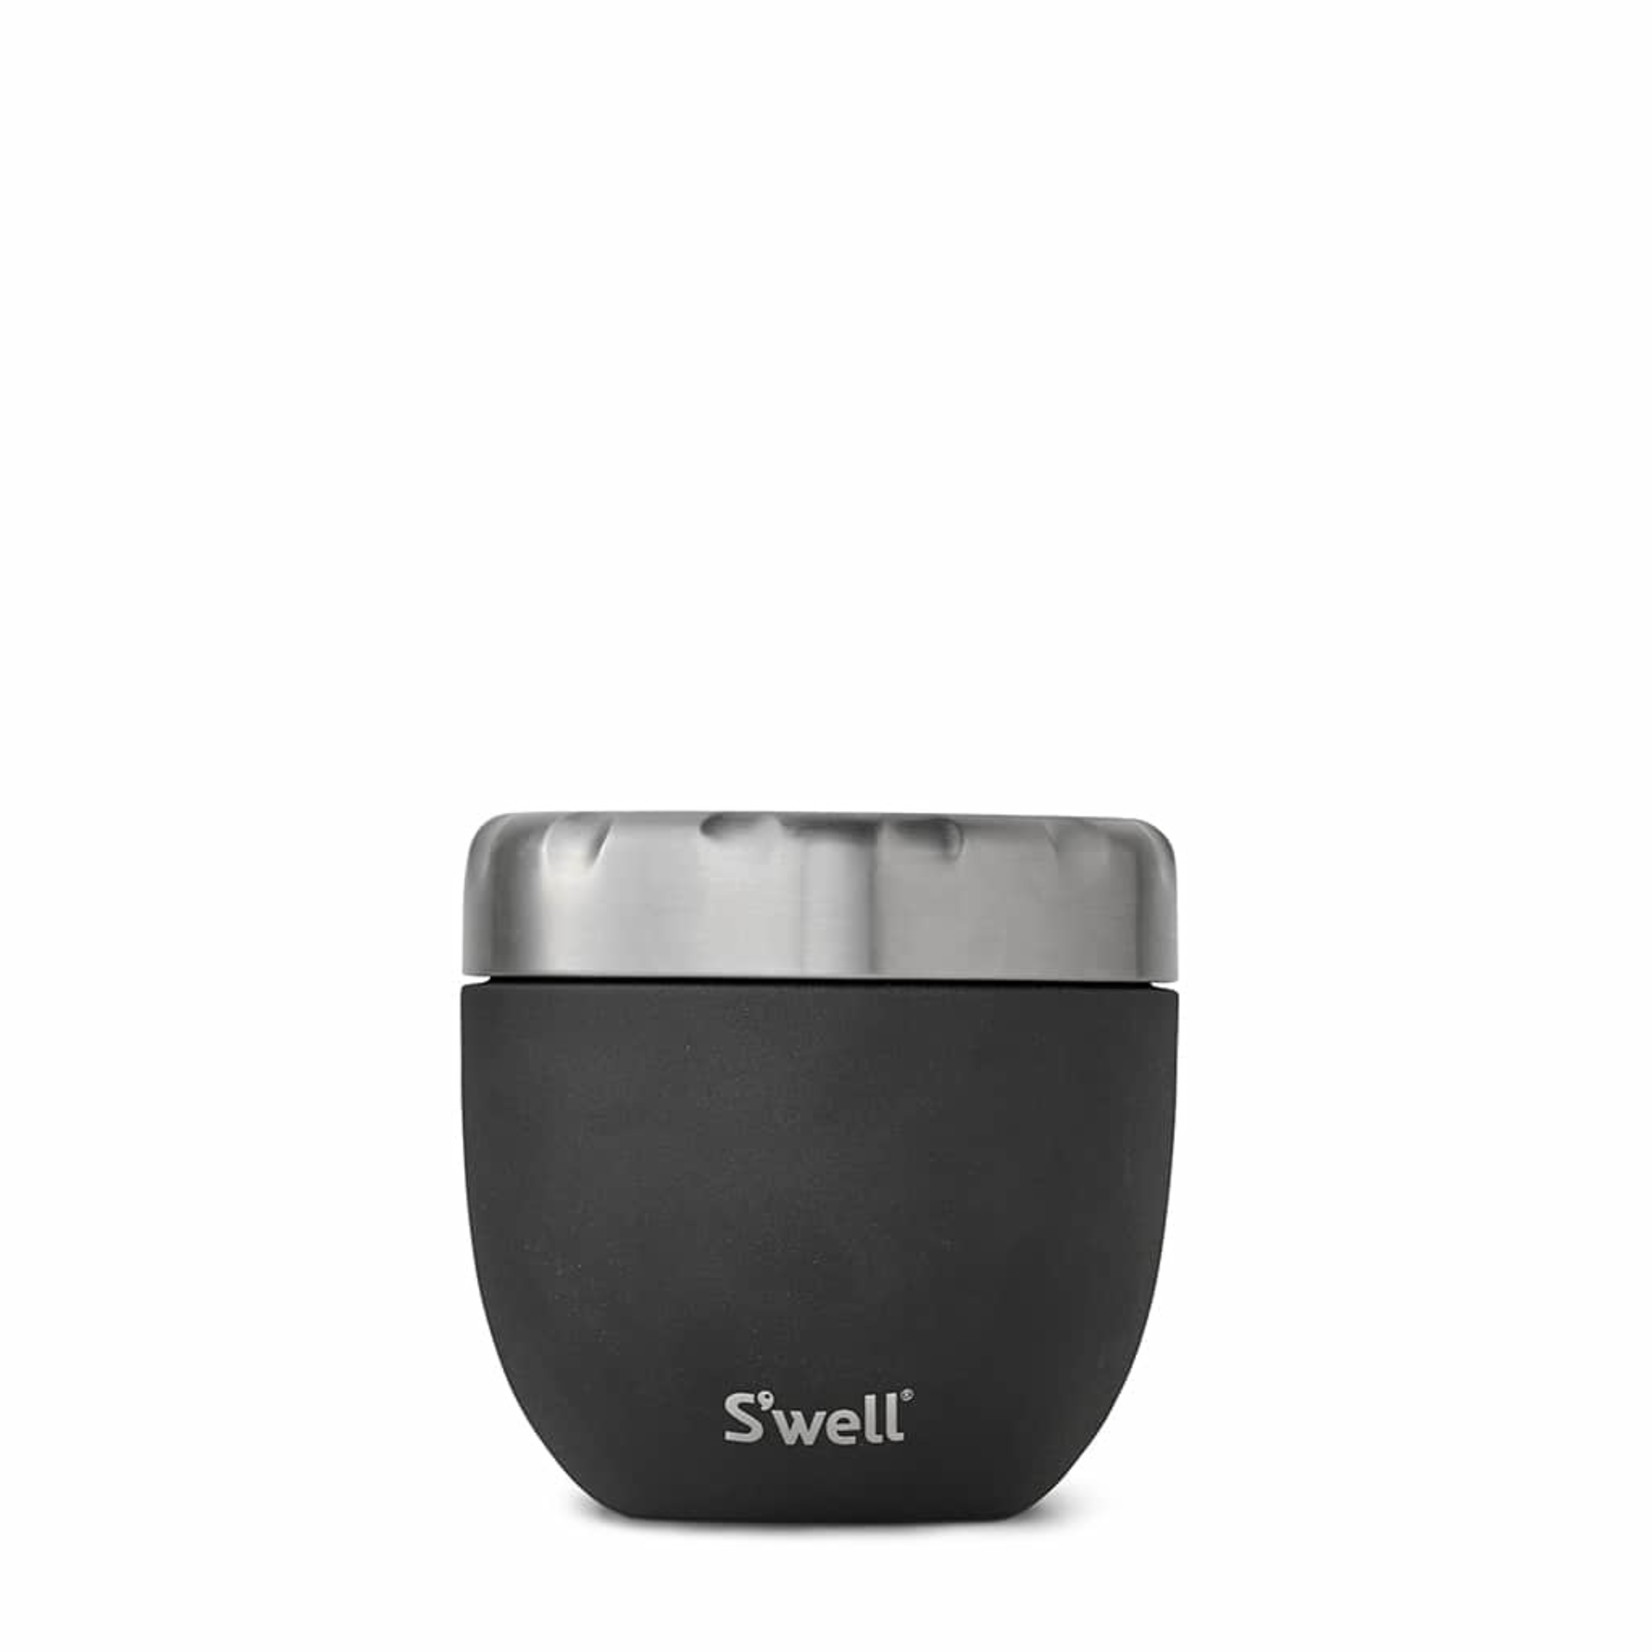 S'well S'well Bottle Eats Food Container-ONYX-21.5oz